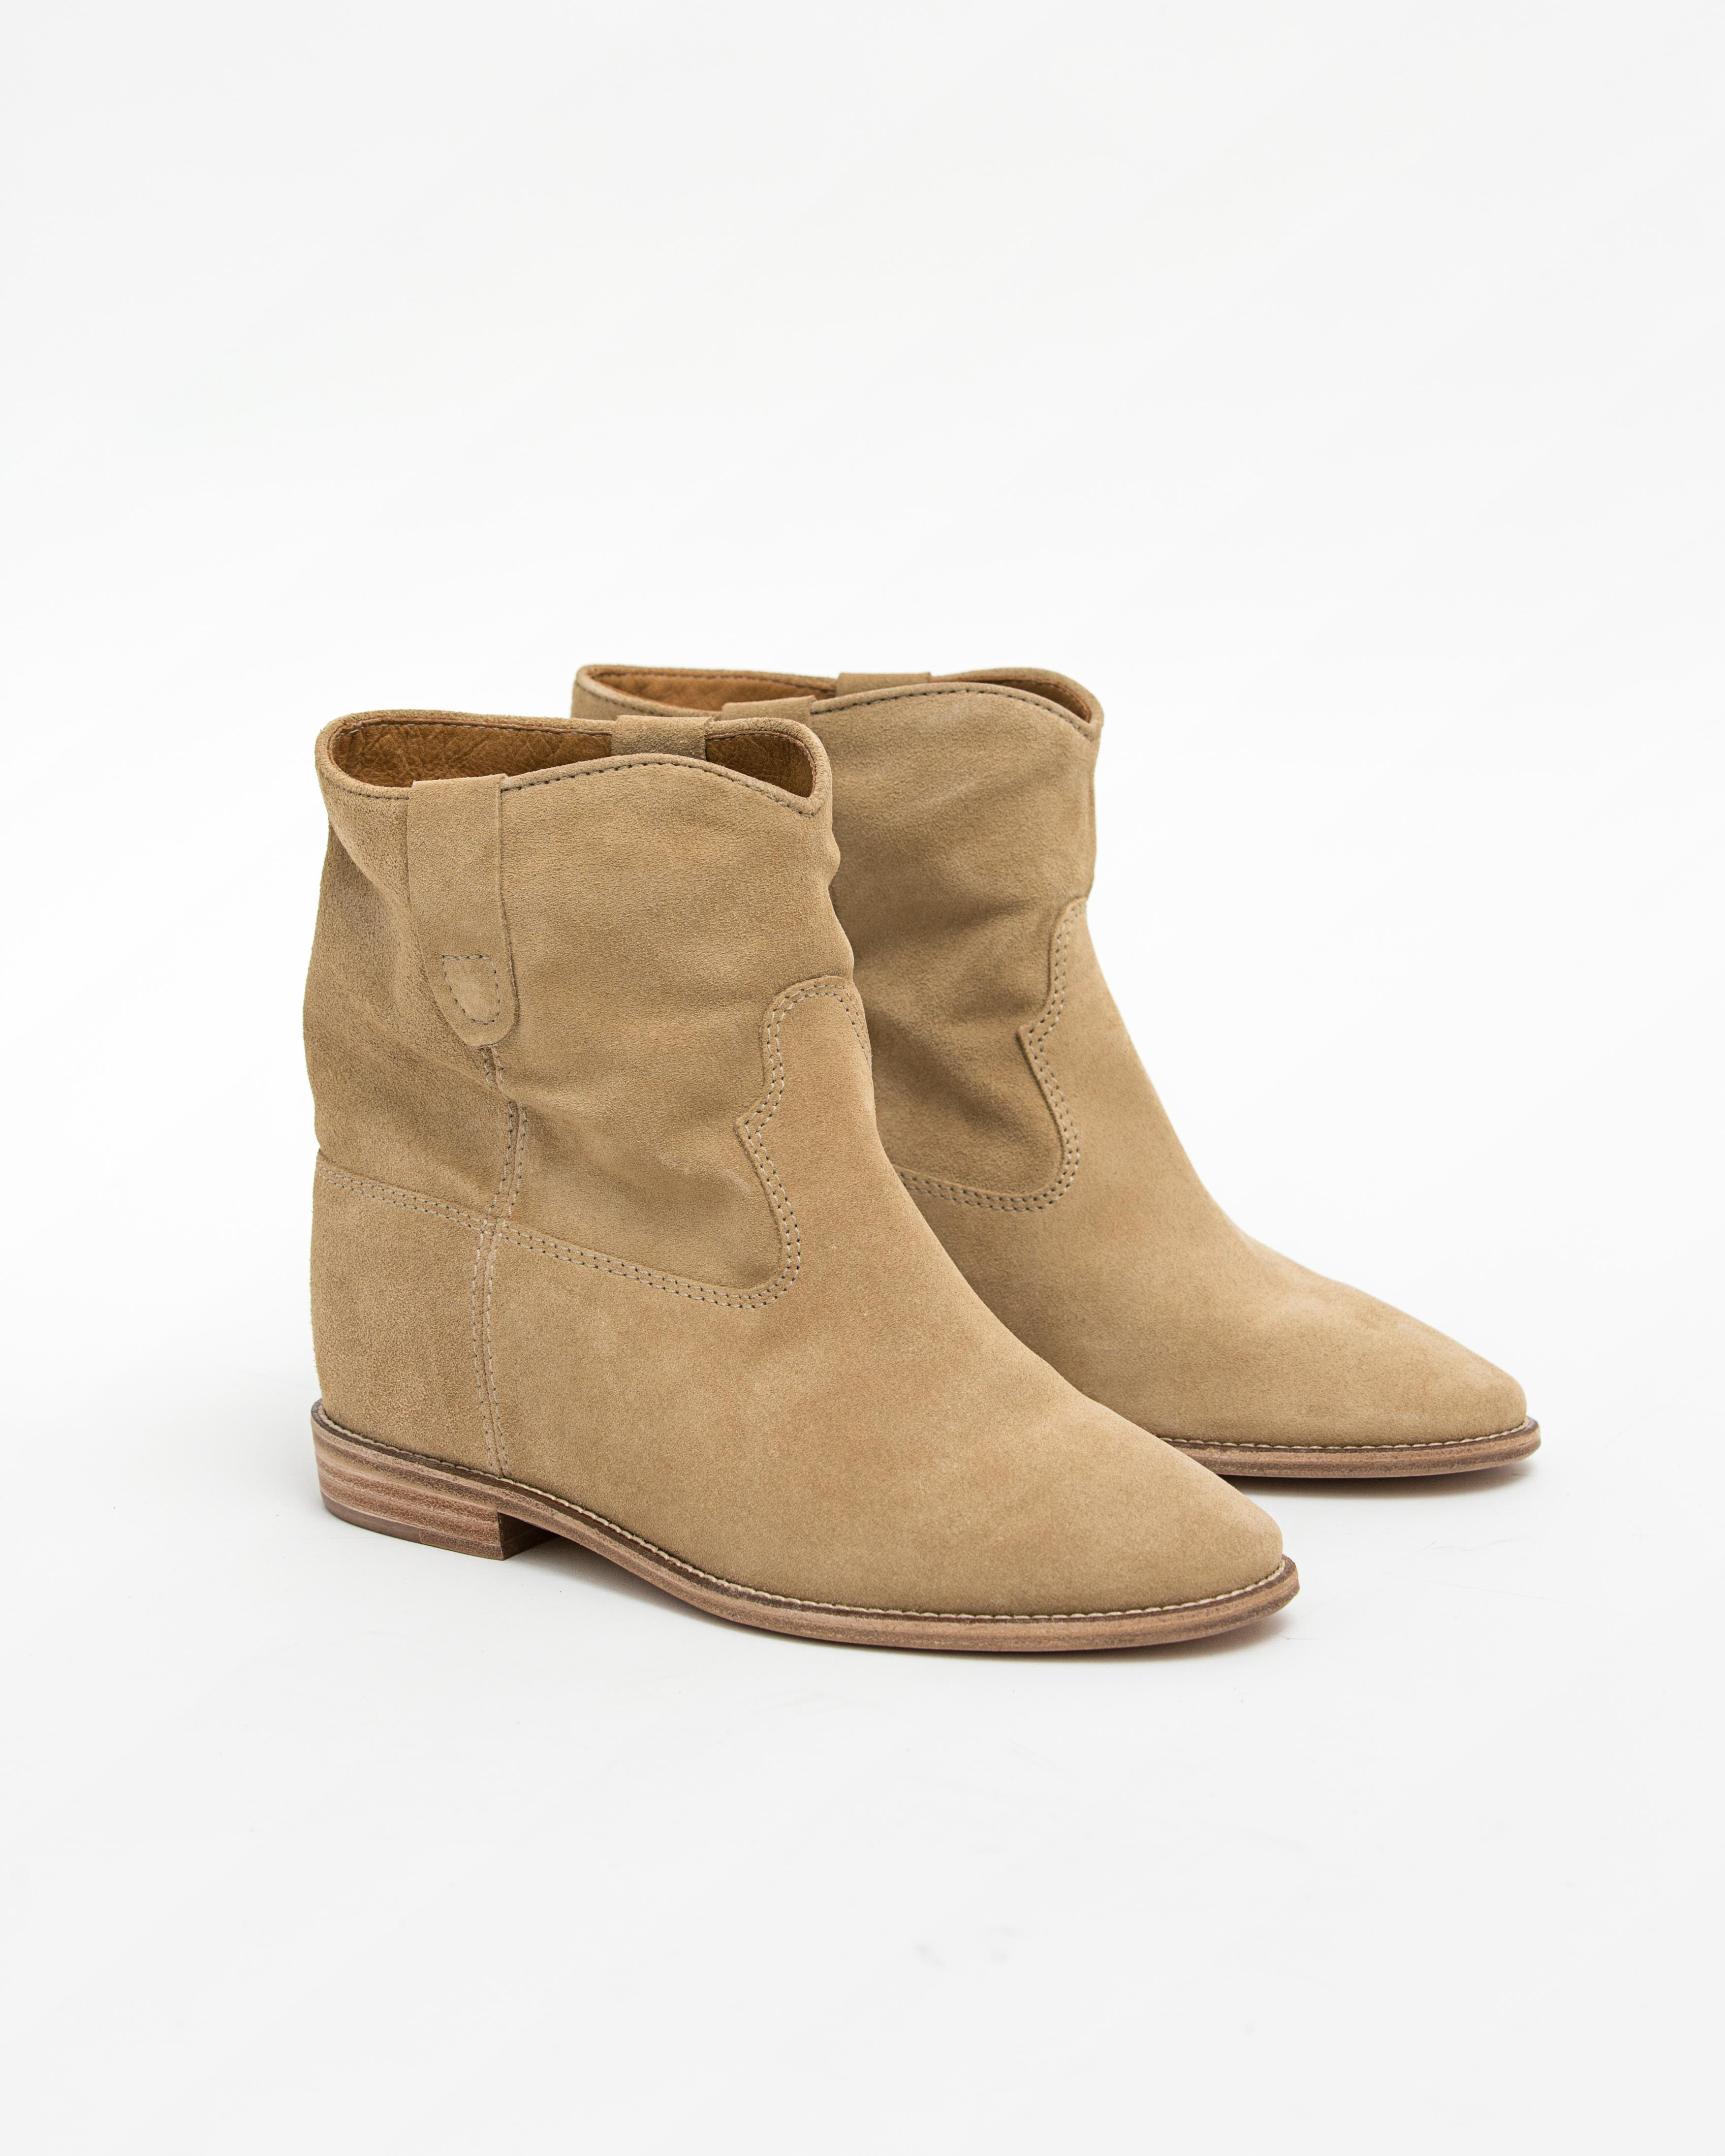 Isabel Marant Etoile 7 - Crisi Suede Boot - Beige